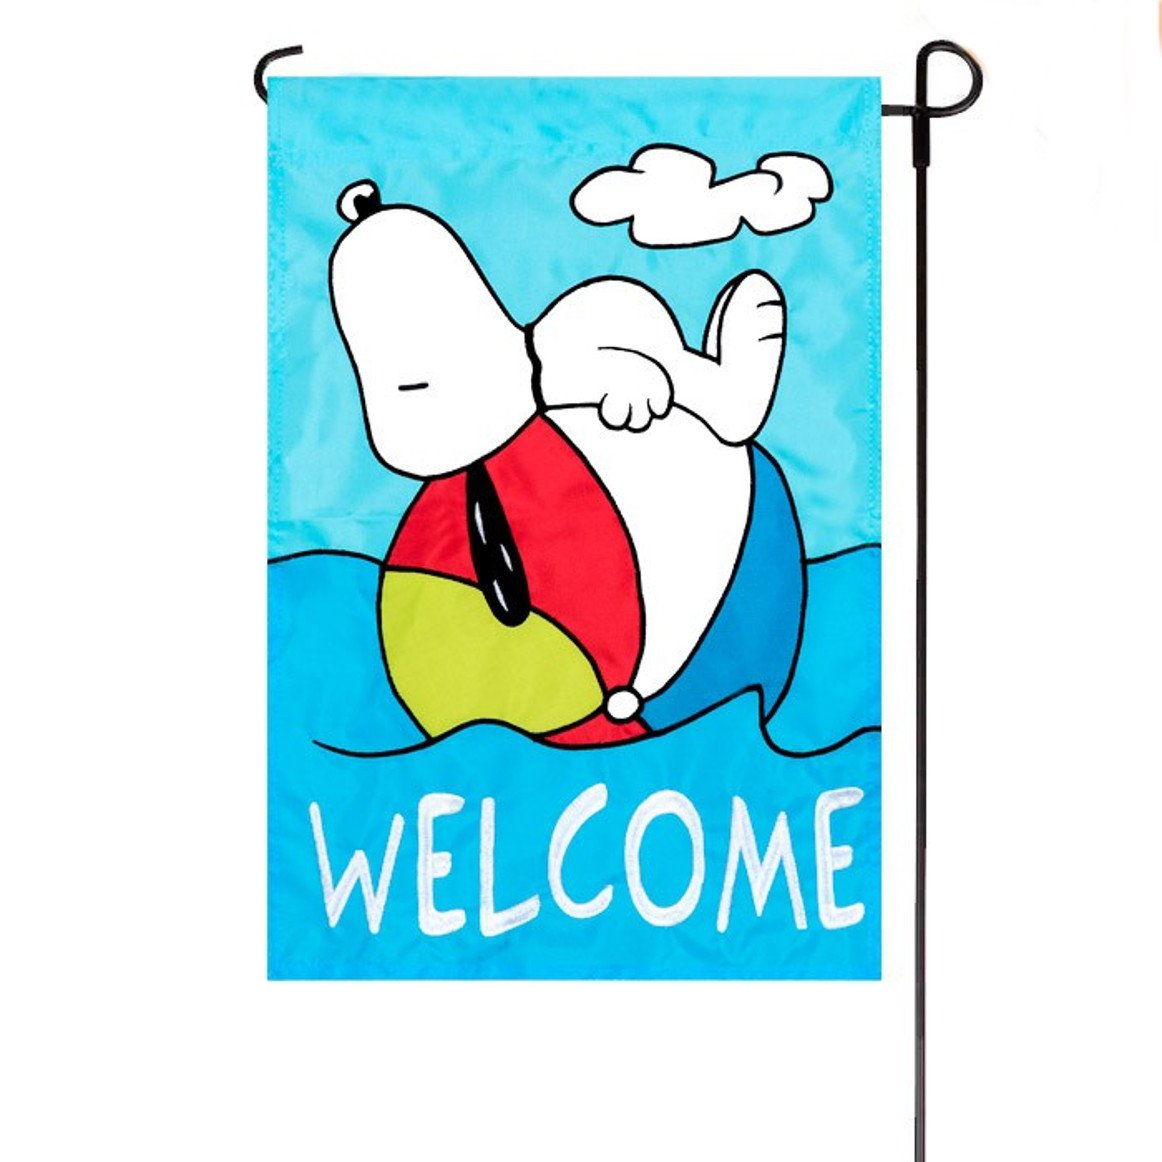 3aec9c52ebca36 Get Quotations · Summer Peanuts Welcome Embroidered   Applique Garden Flag  12